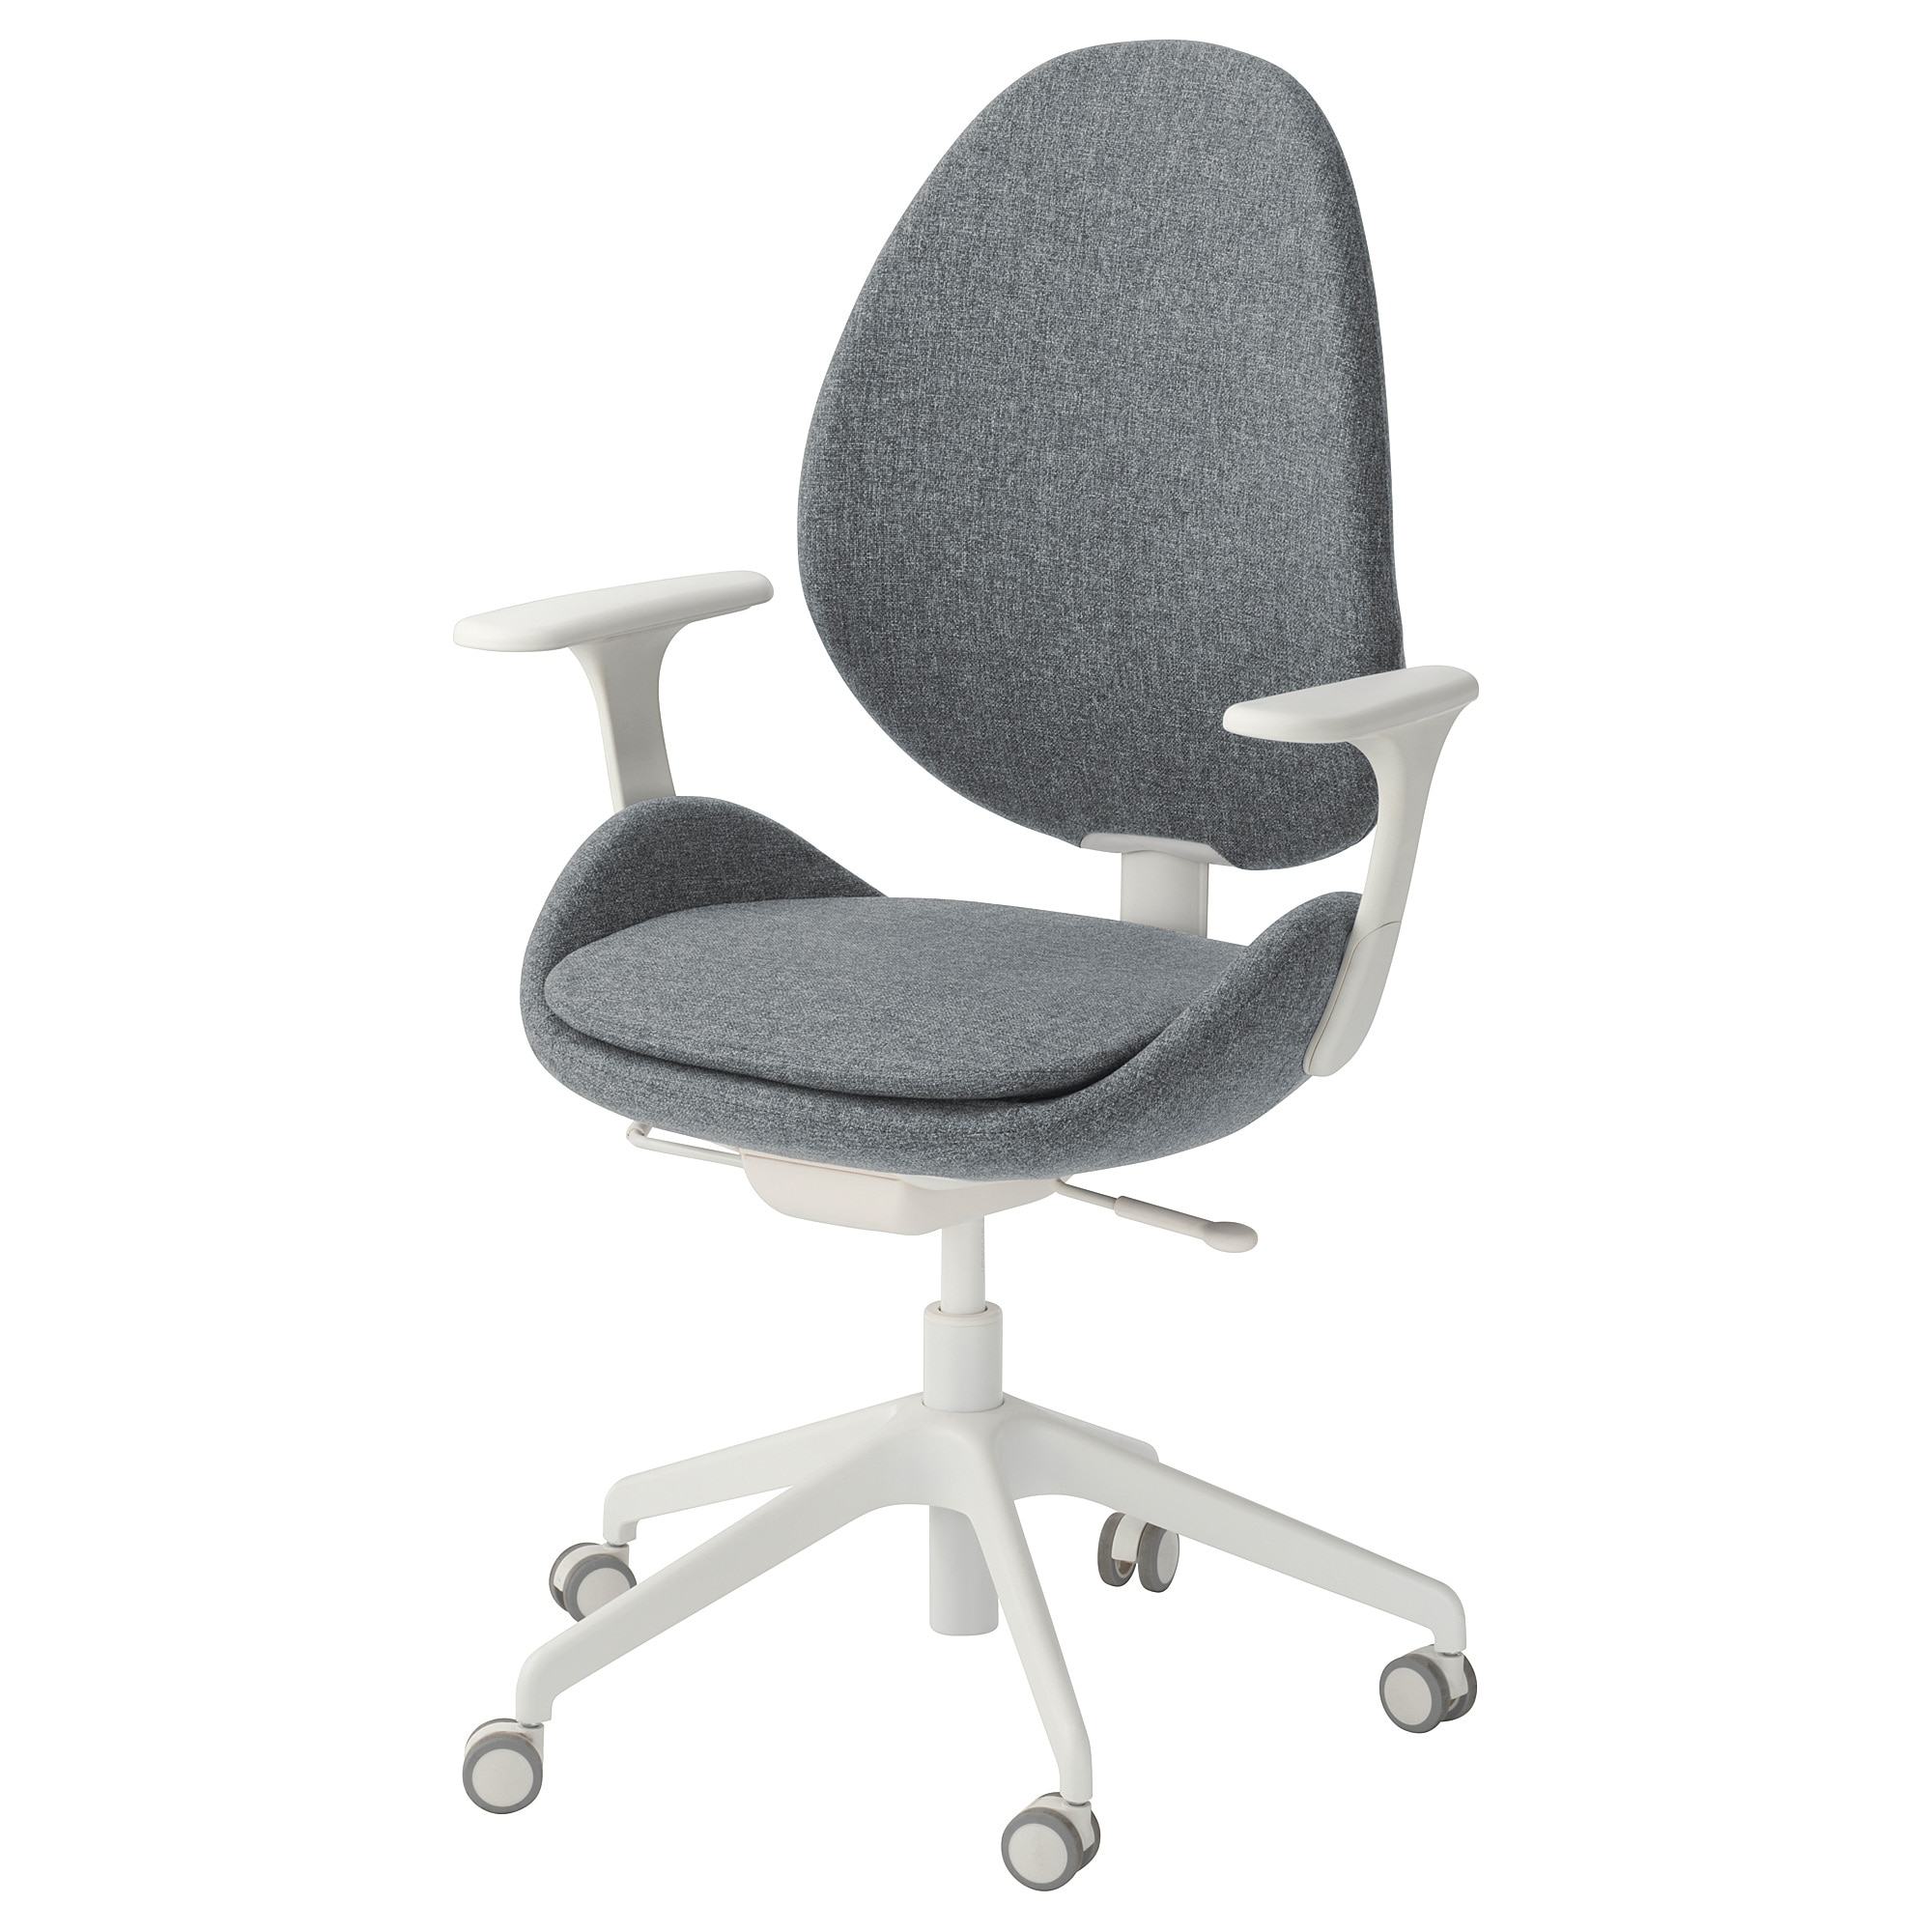 Hattefjäll Swivel Chair With Armrests Gunnared Medium Grey/white – Ikea Intended For Grey Swivel Chairs (Image 8 of 20)